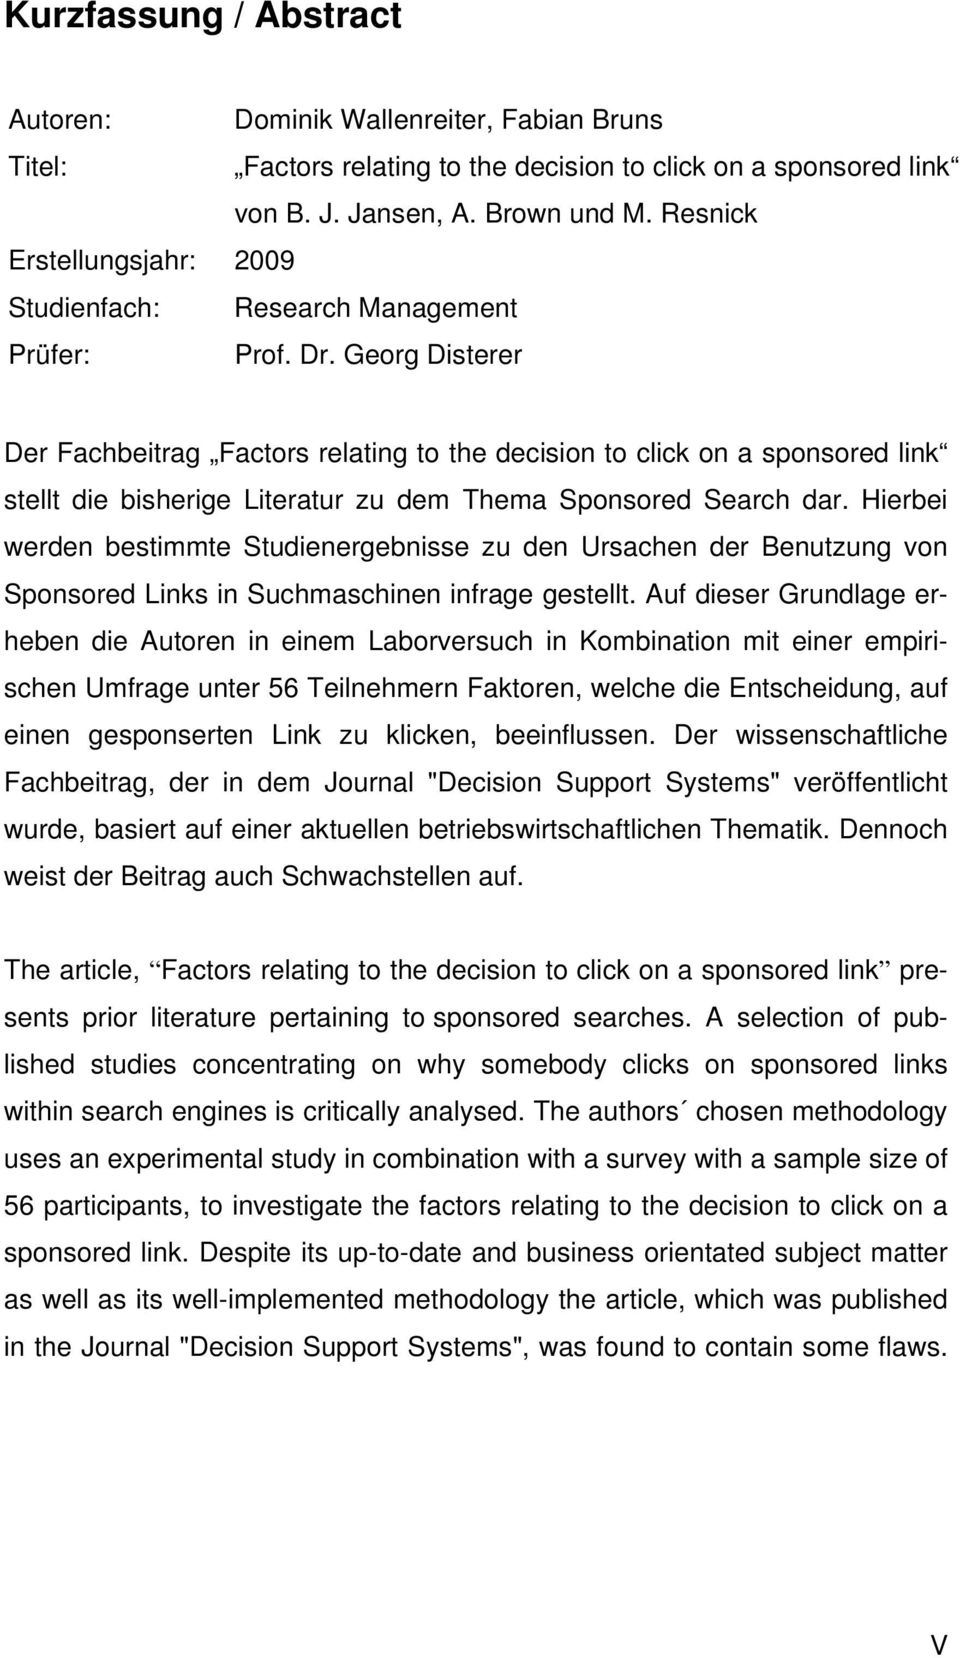 Georg Disterer Der Fachbeitrag Factors relating to the decision to click on a sponsored link stellt die bisherige Literatur zu dem Thema Sponsored Search dar.